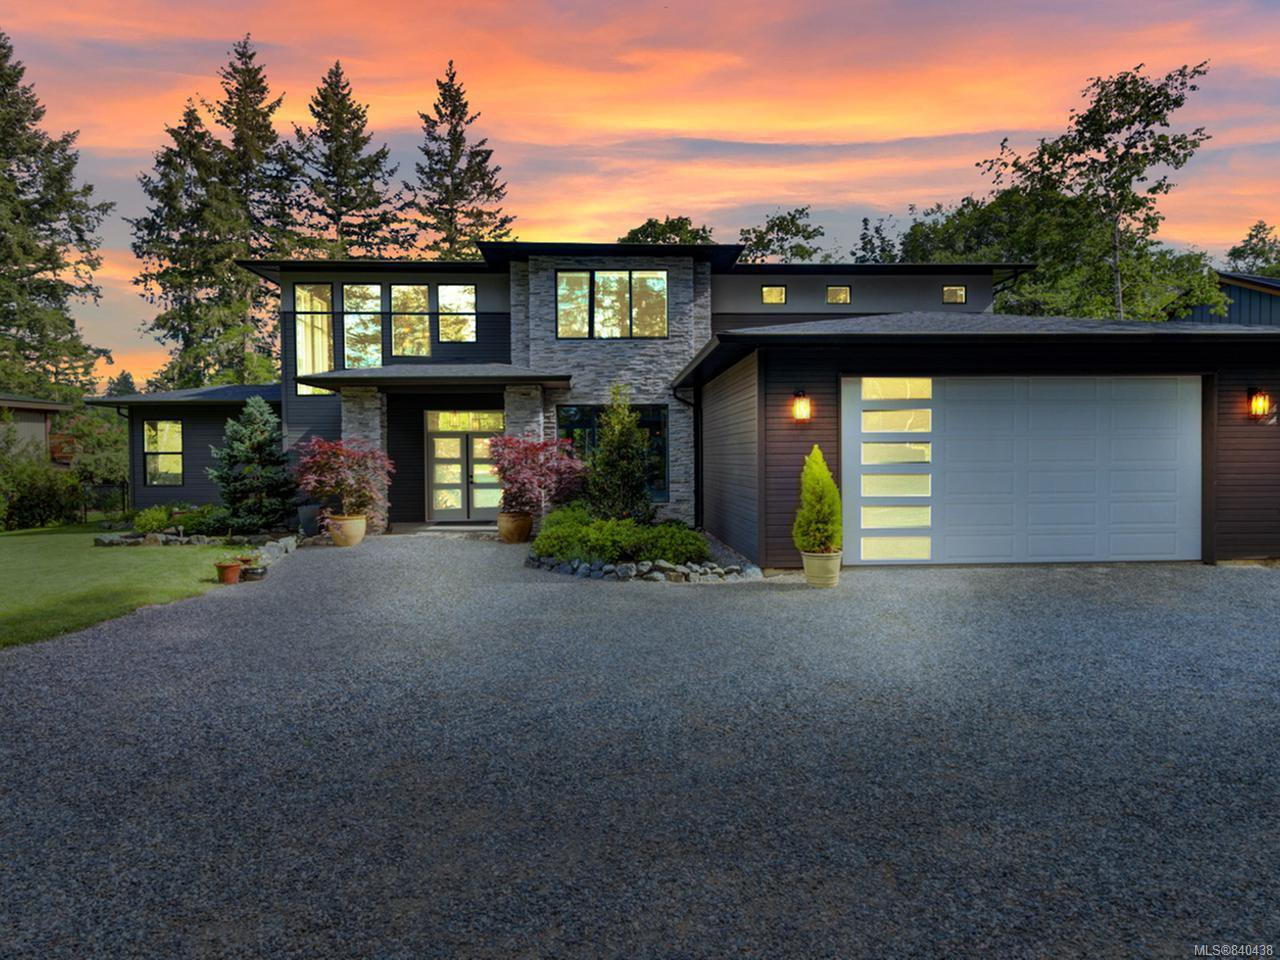 Main Photo: 4887 Greaves Cres in COURTENAY: CV Courtenay West House for sale (Comox Valley)  : MLS®# 840438